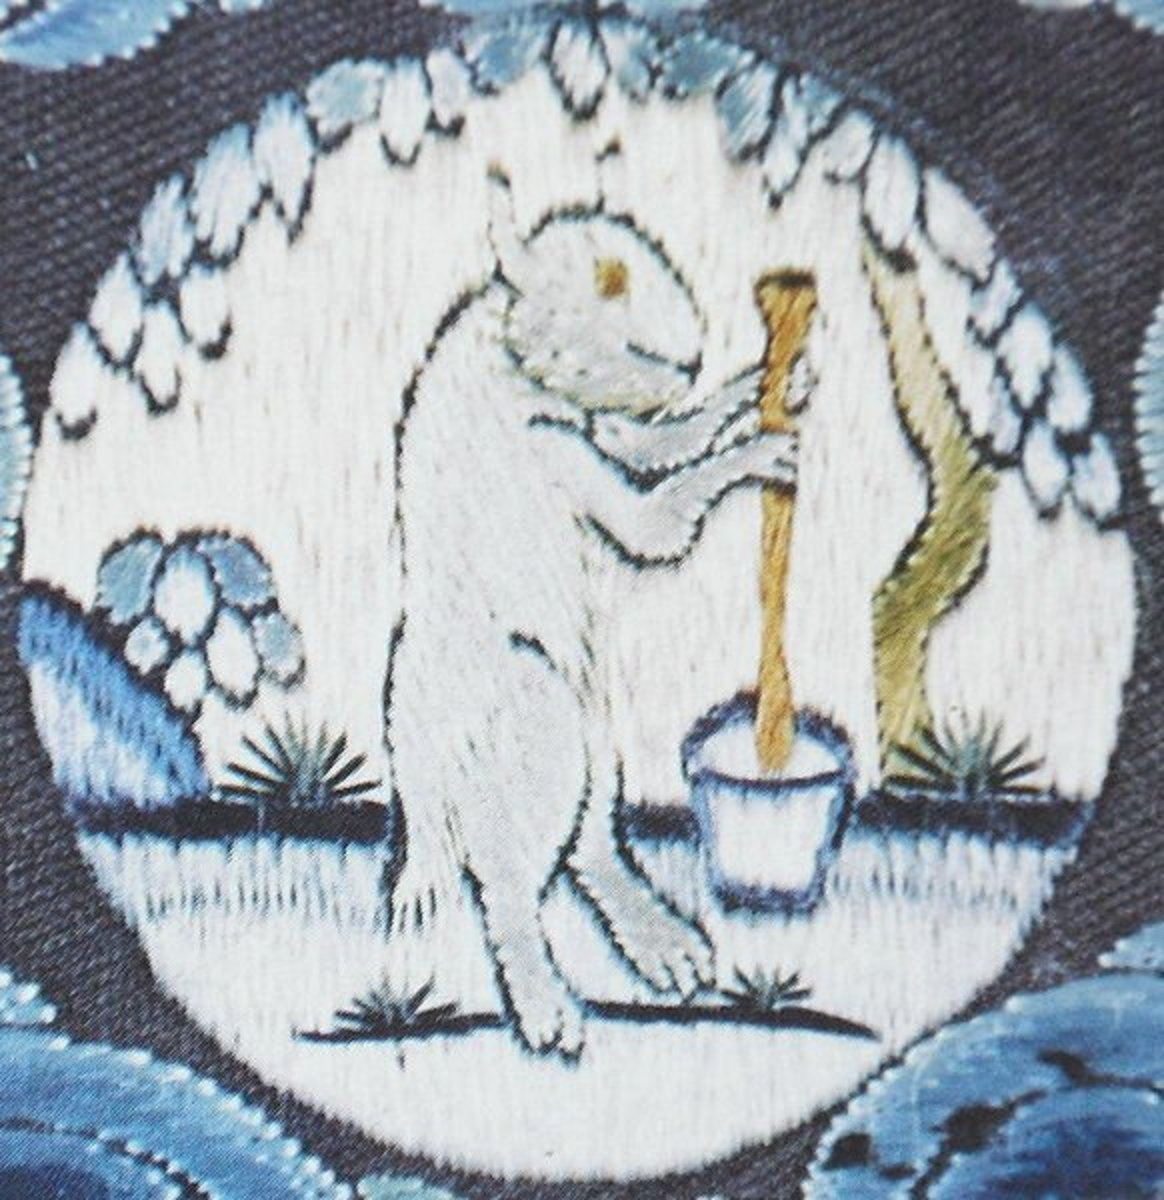 A medallion on an 18th century Chinese emperor's robe depicting the Moon Rabbit mixing its elixir  of life at the foot of a cassia tree.